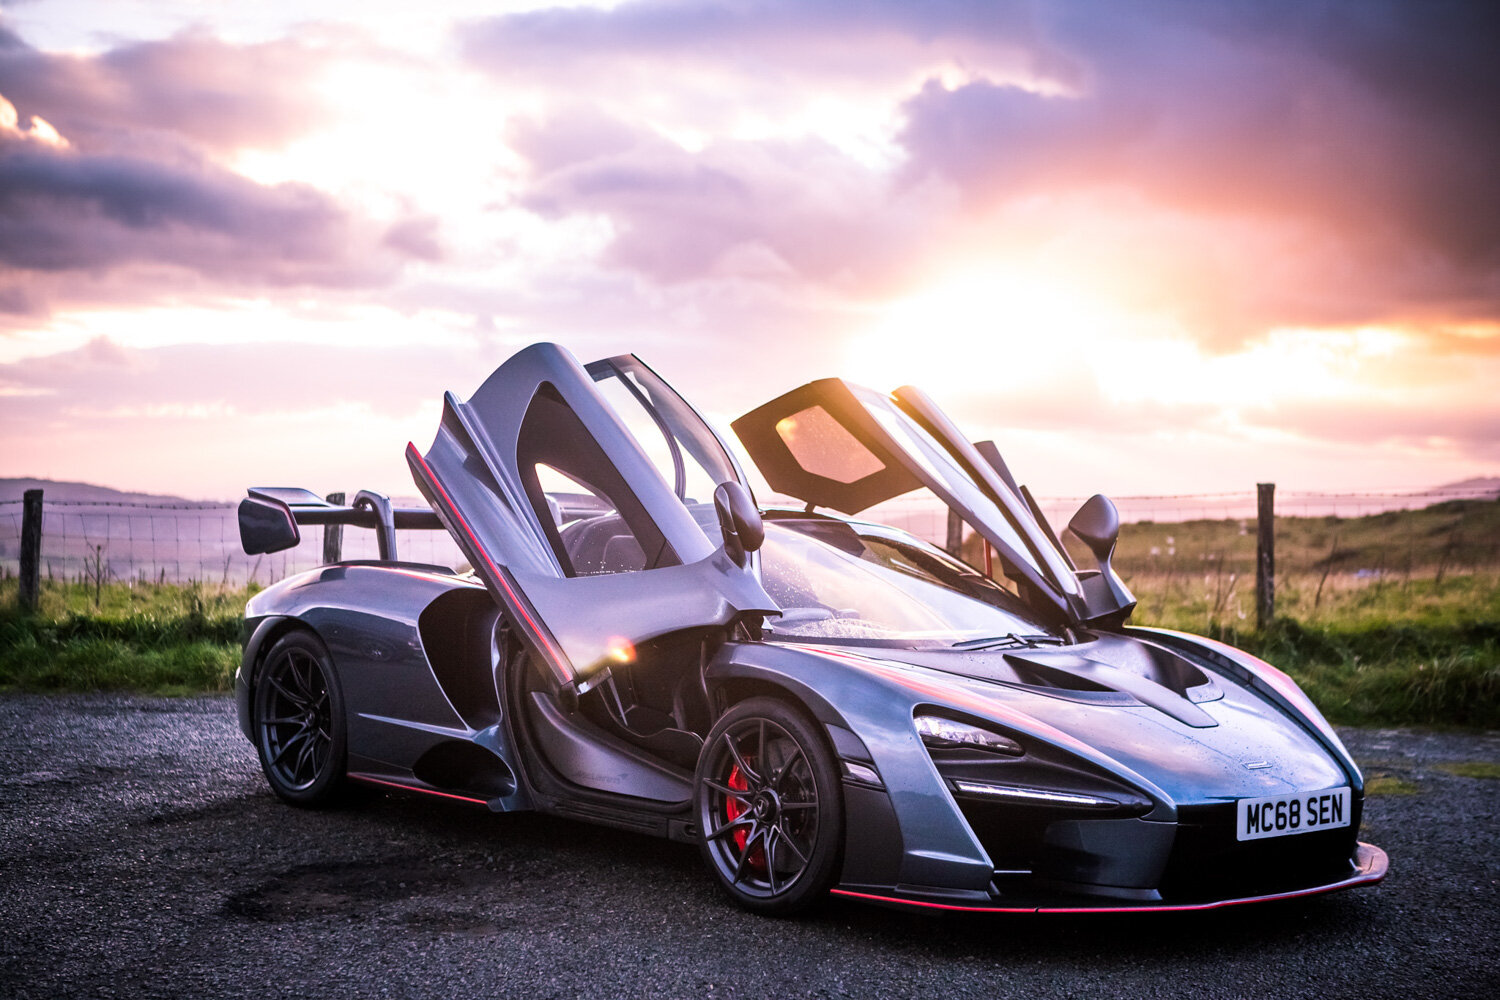 drone_filming_aerial_imagery_north_wales_drone_club_gt_mclaren_senna-1.jpg